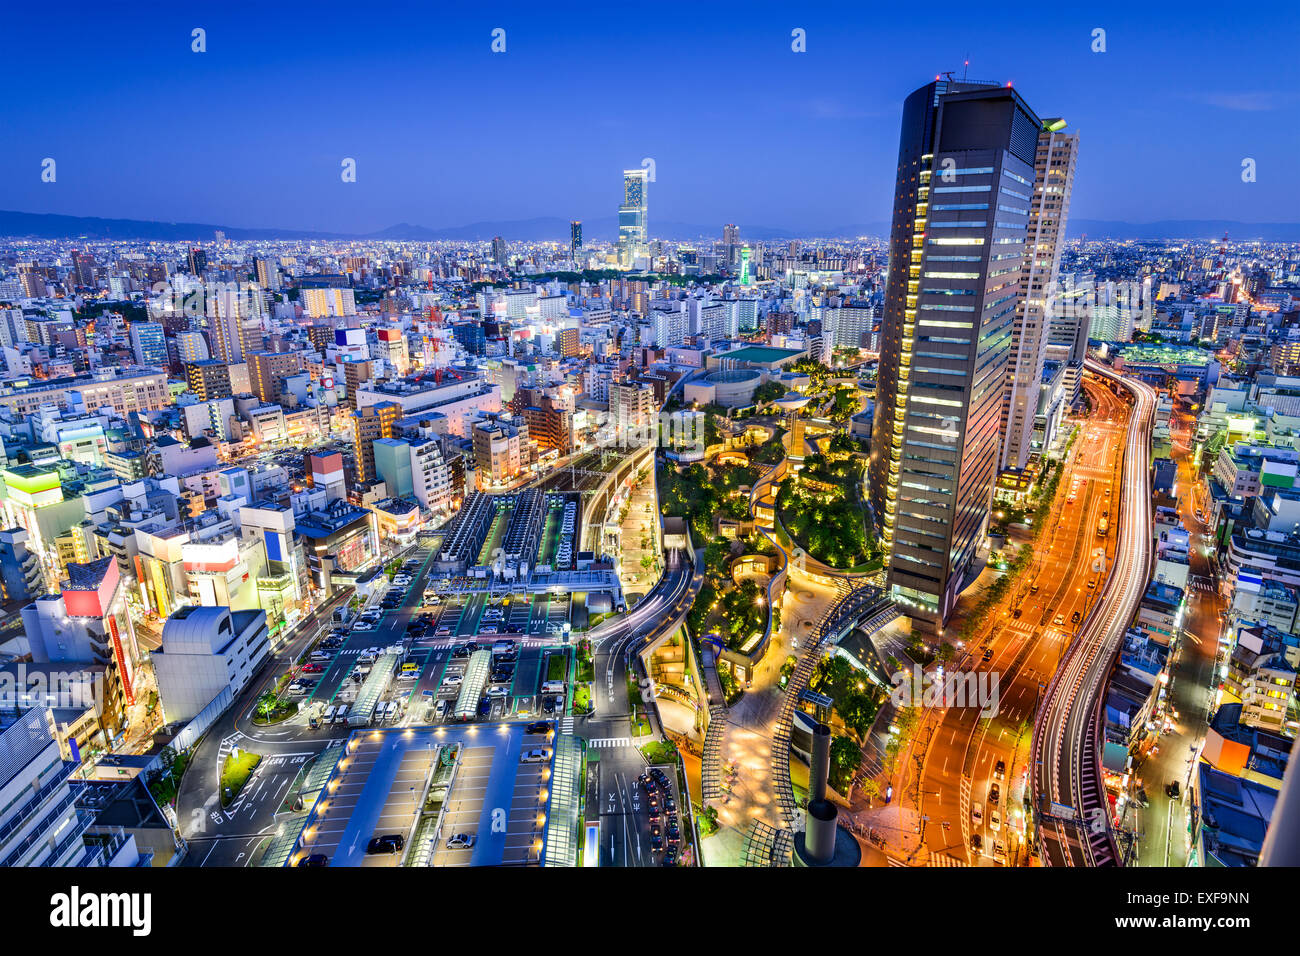 Osaka, Japan city skyline overlooking Namba District. - Stock Image